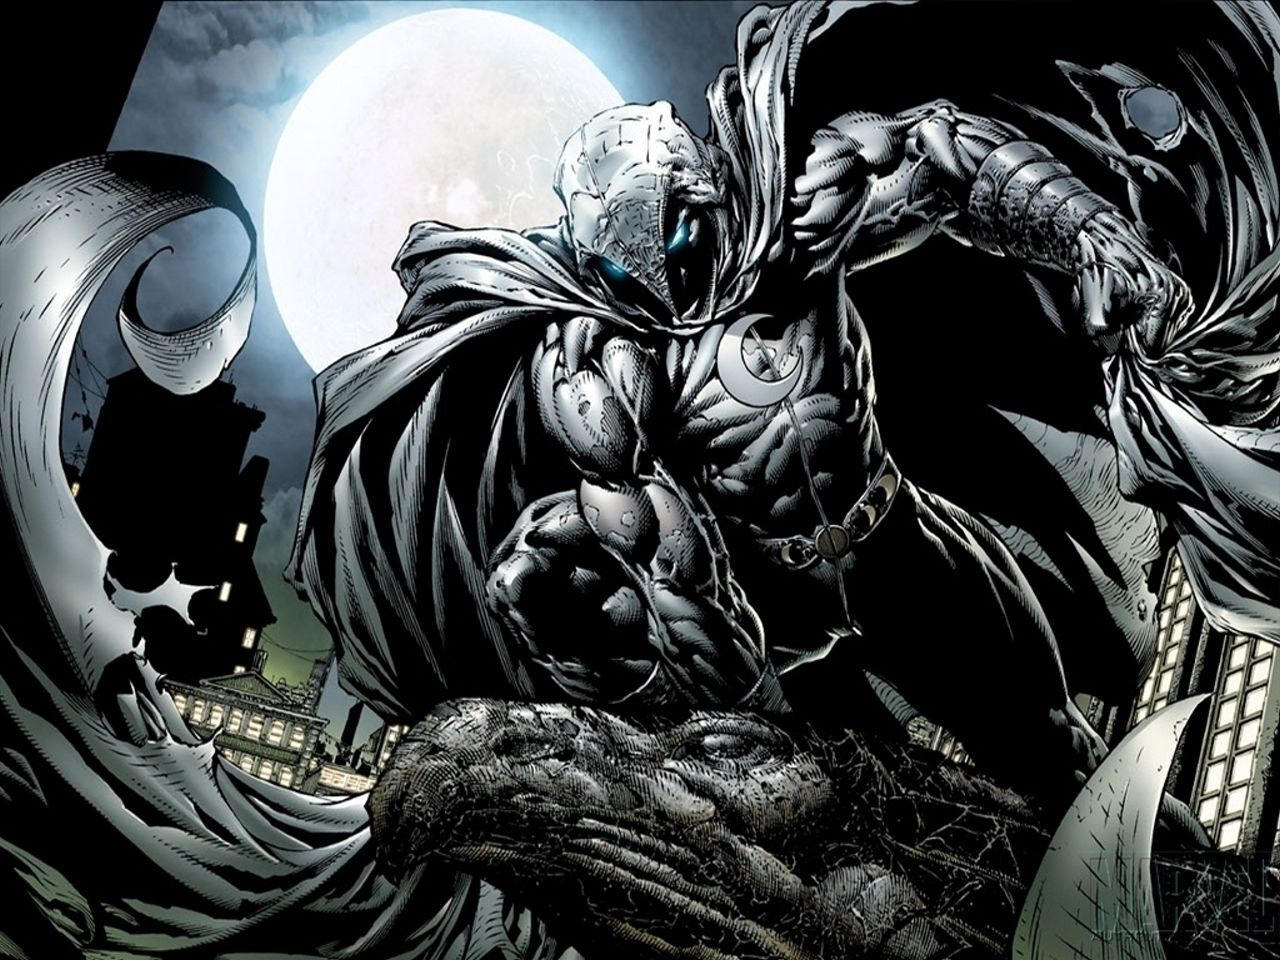 Moon Knight will be one of the newest additions to Disney Plus